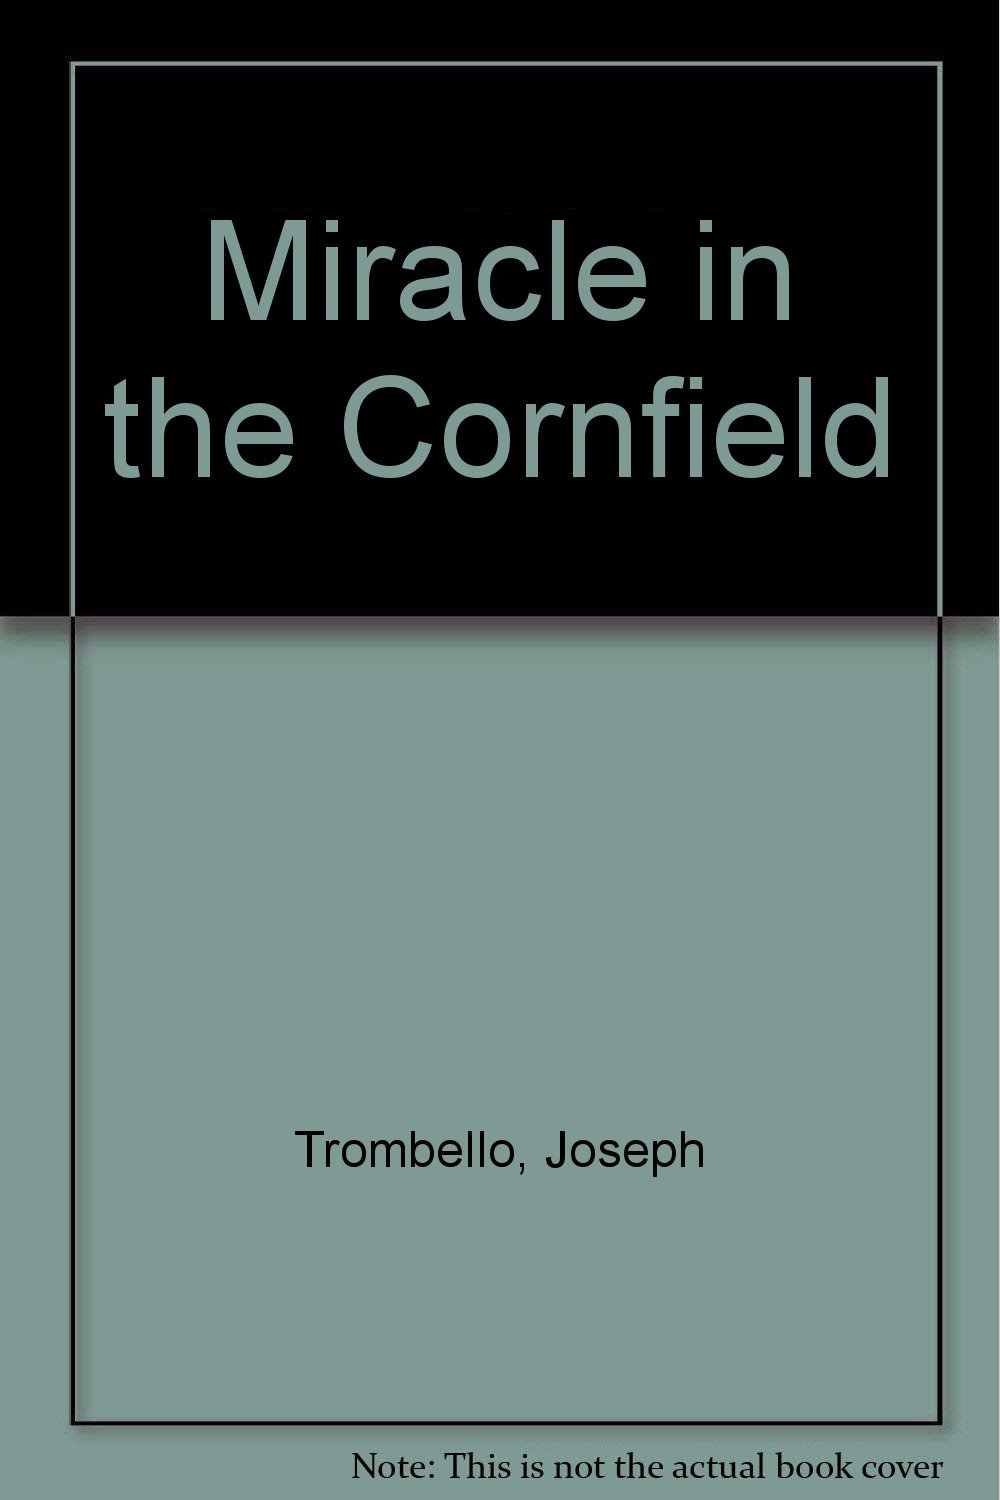 Miracle in the Cornfield